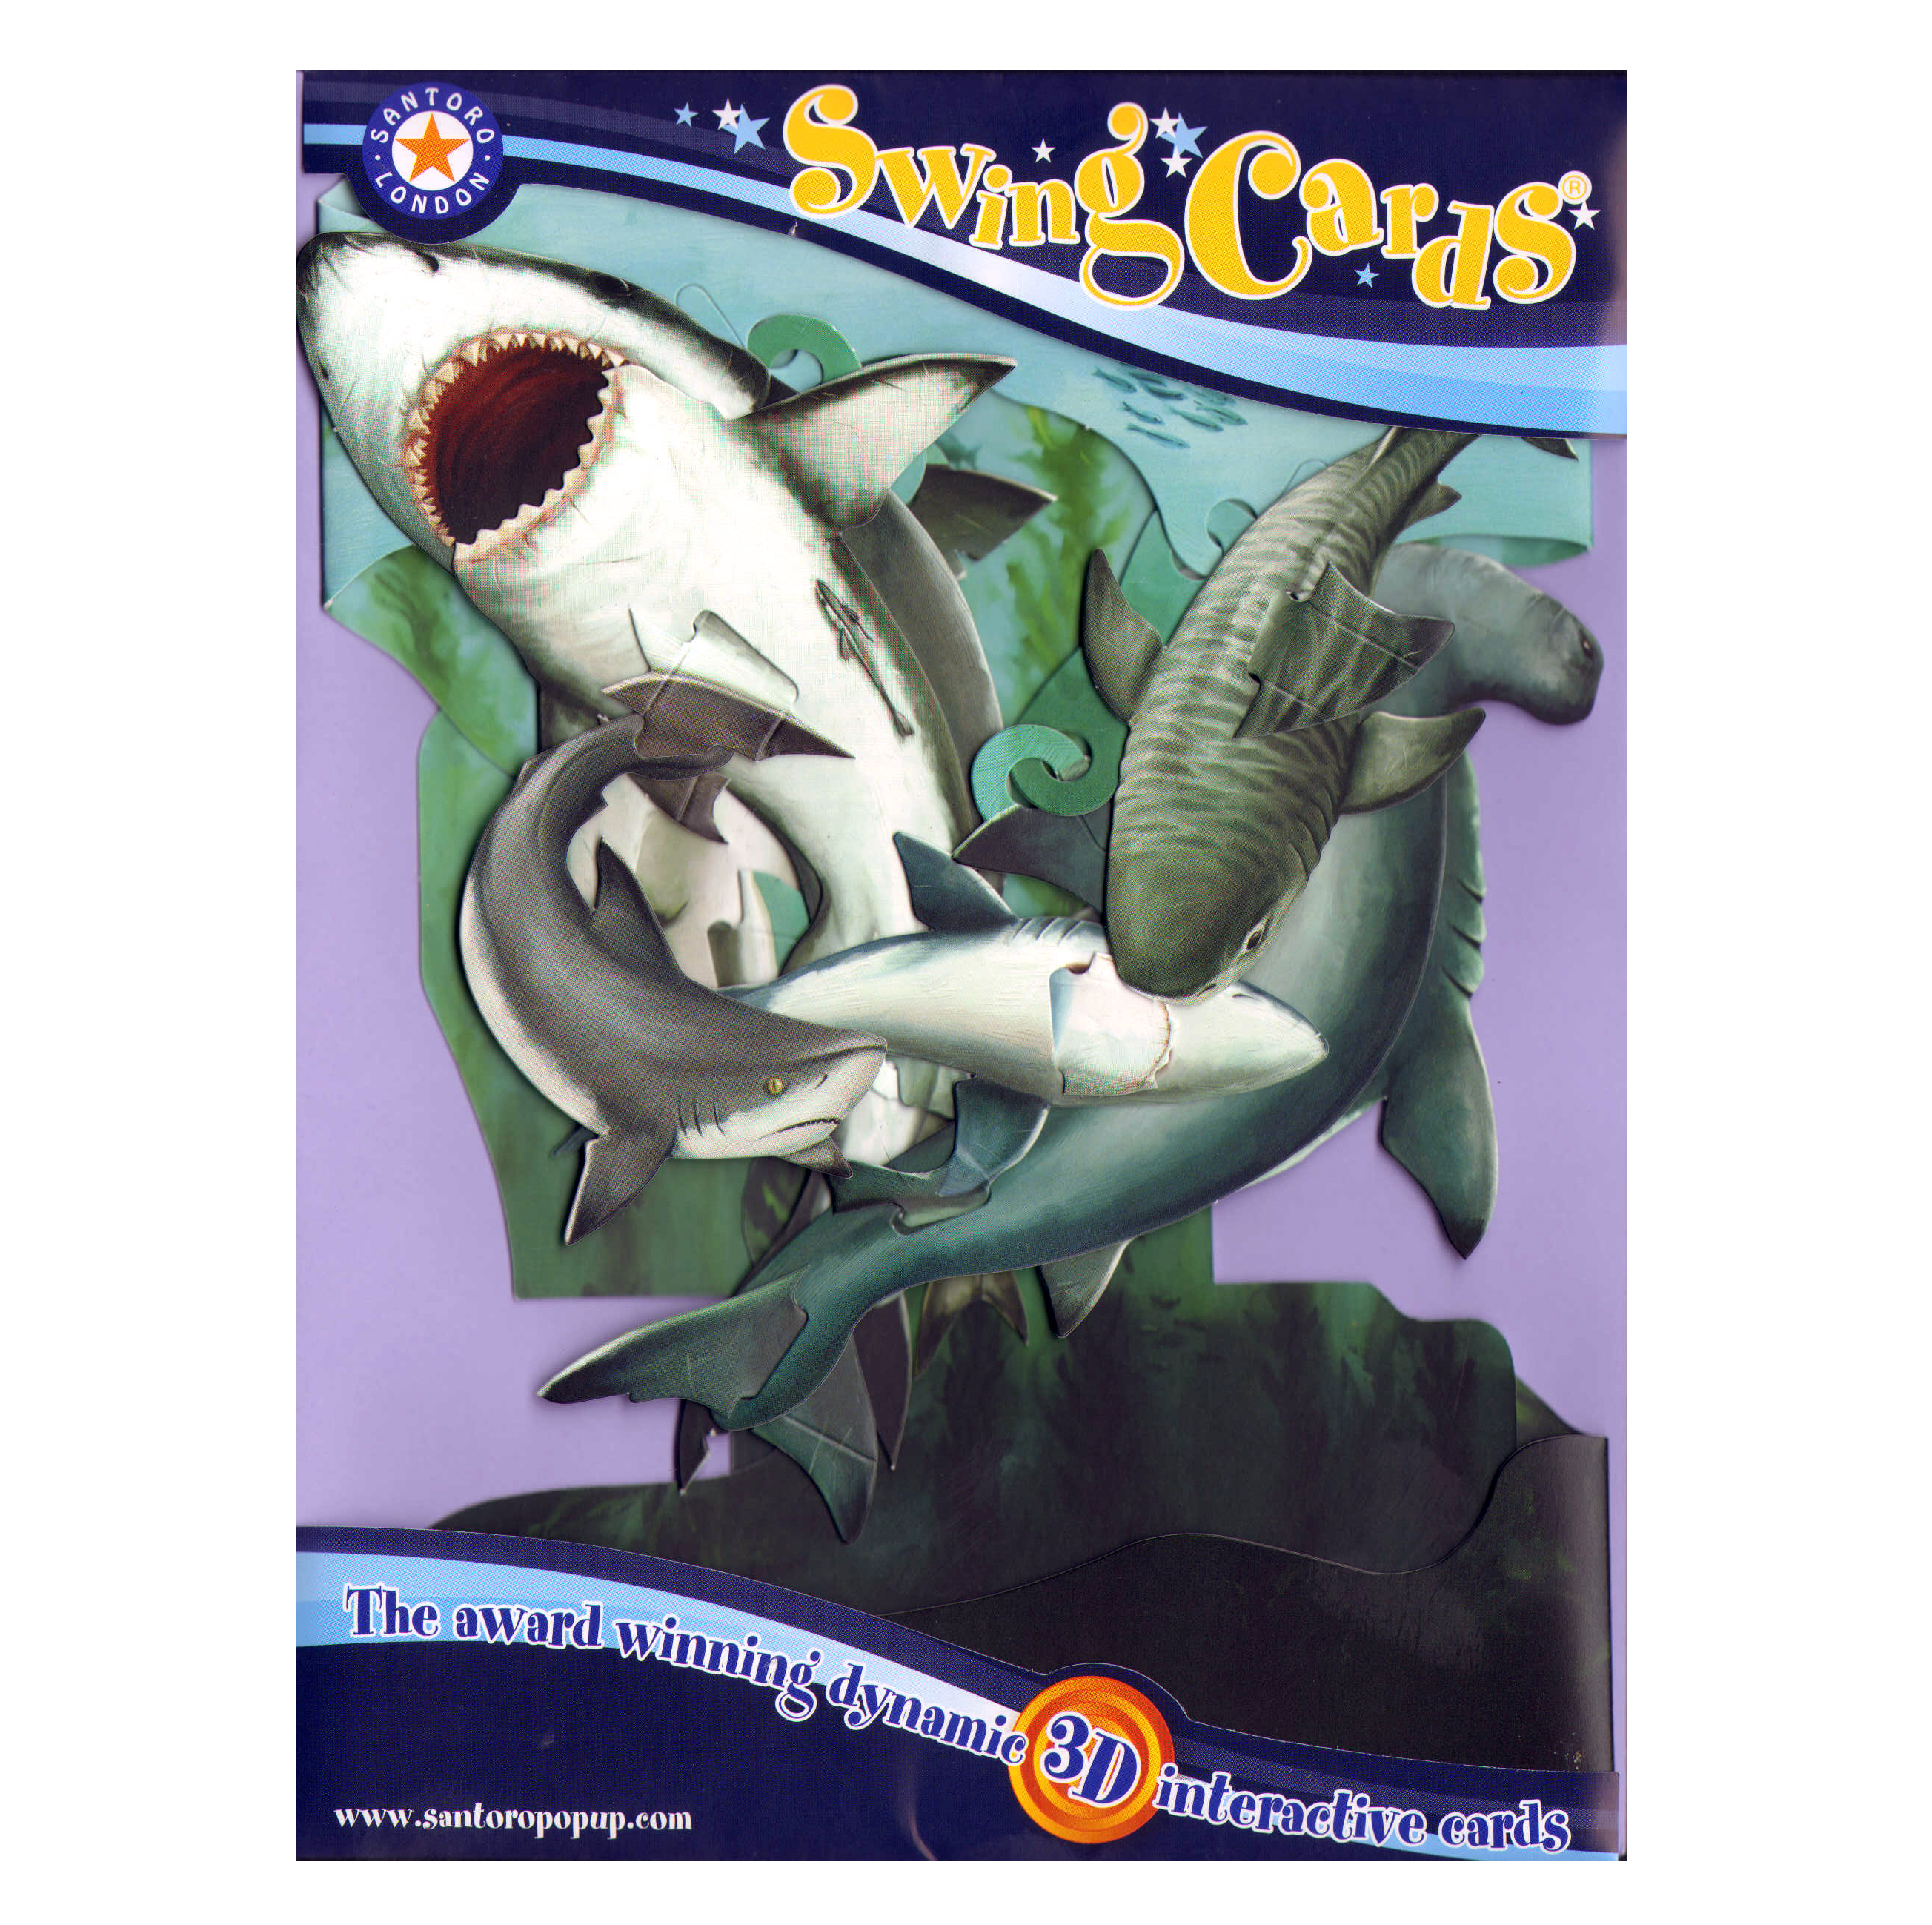 Sharks Swing Card Award Winning Dynamic 3d Interactive Greetings